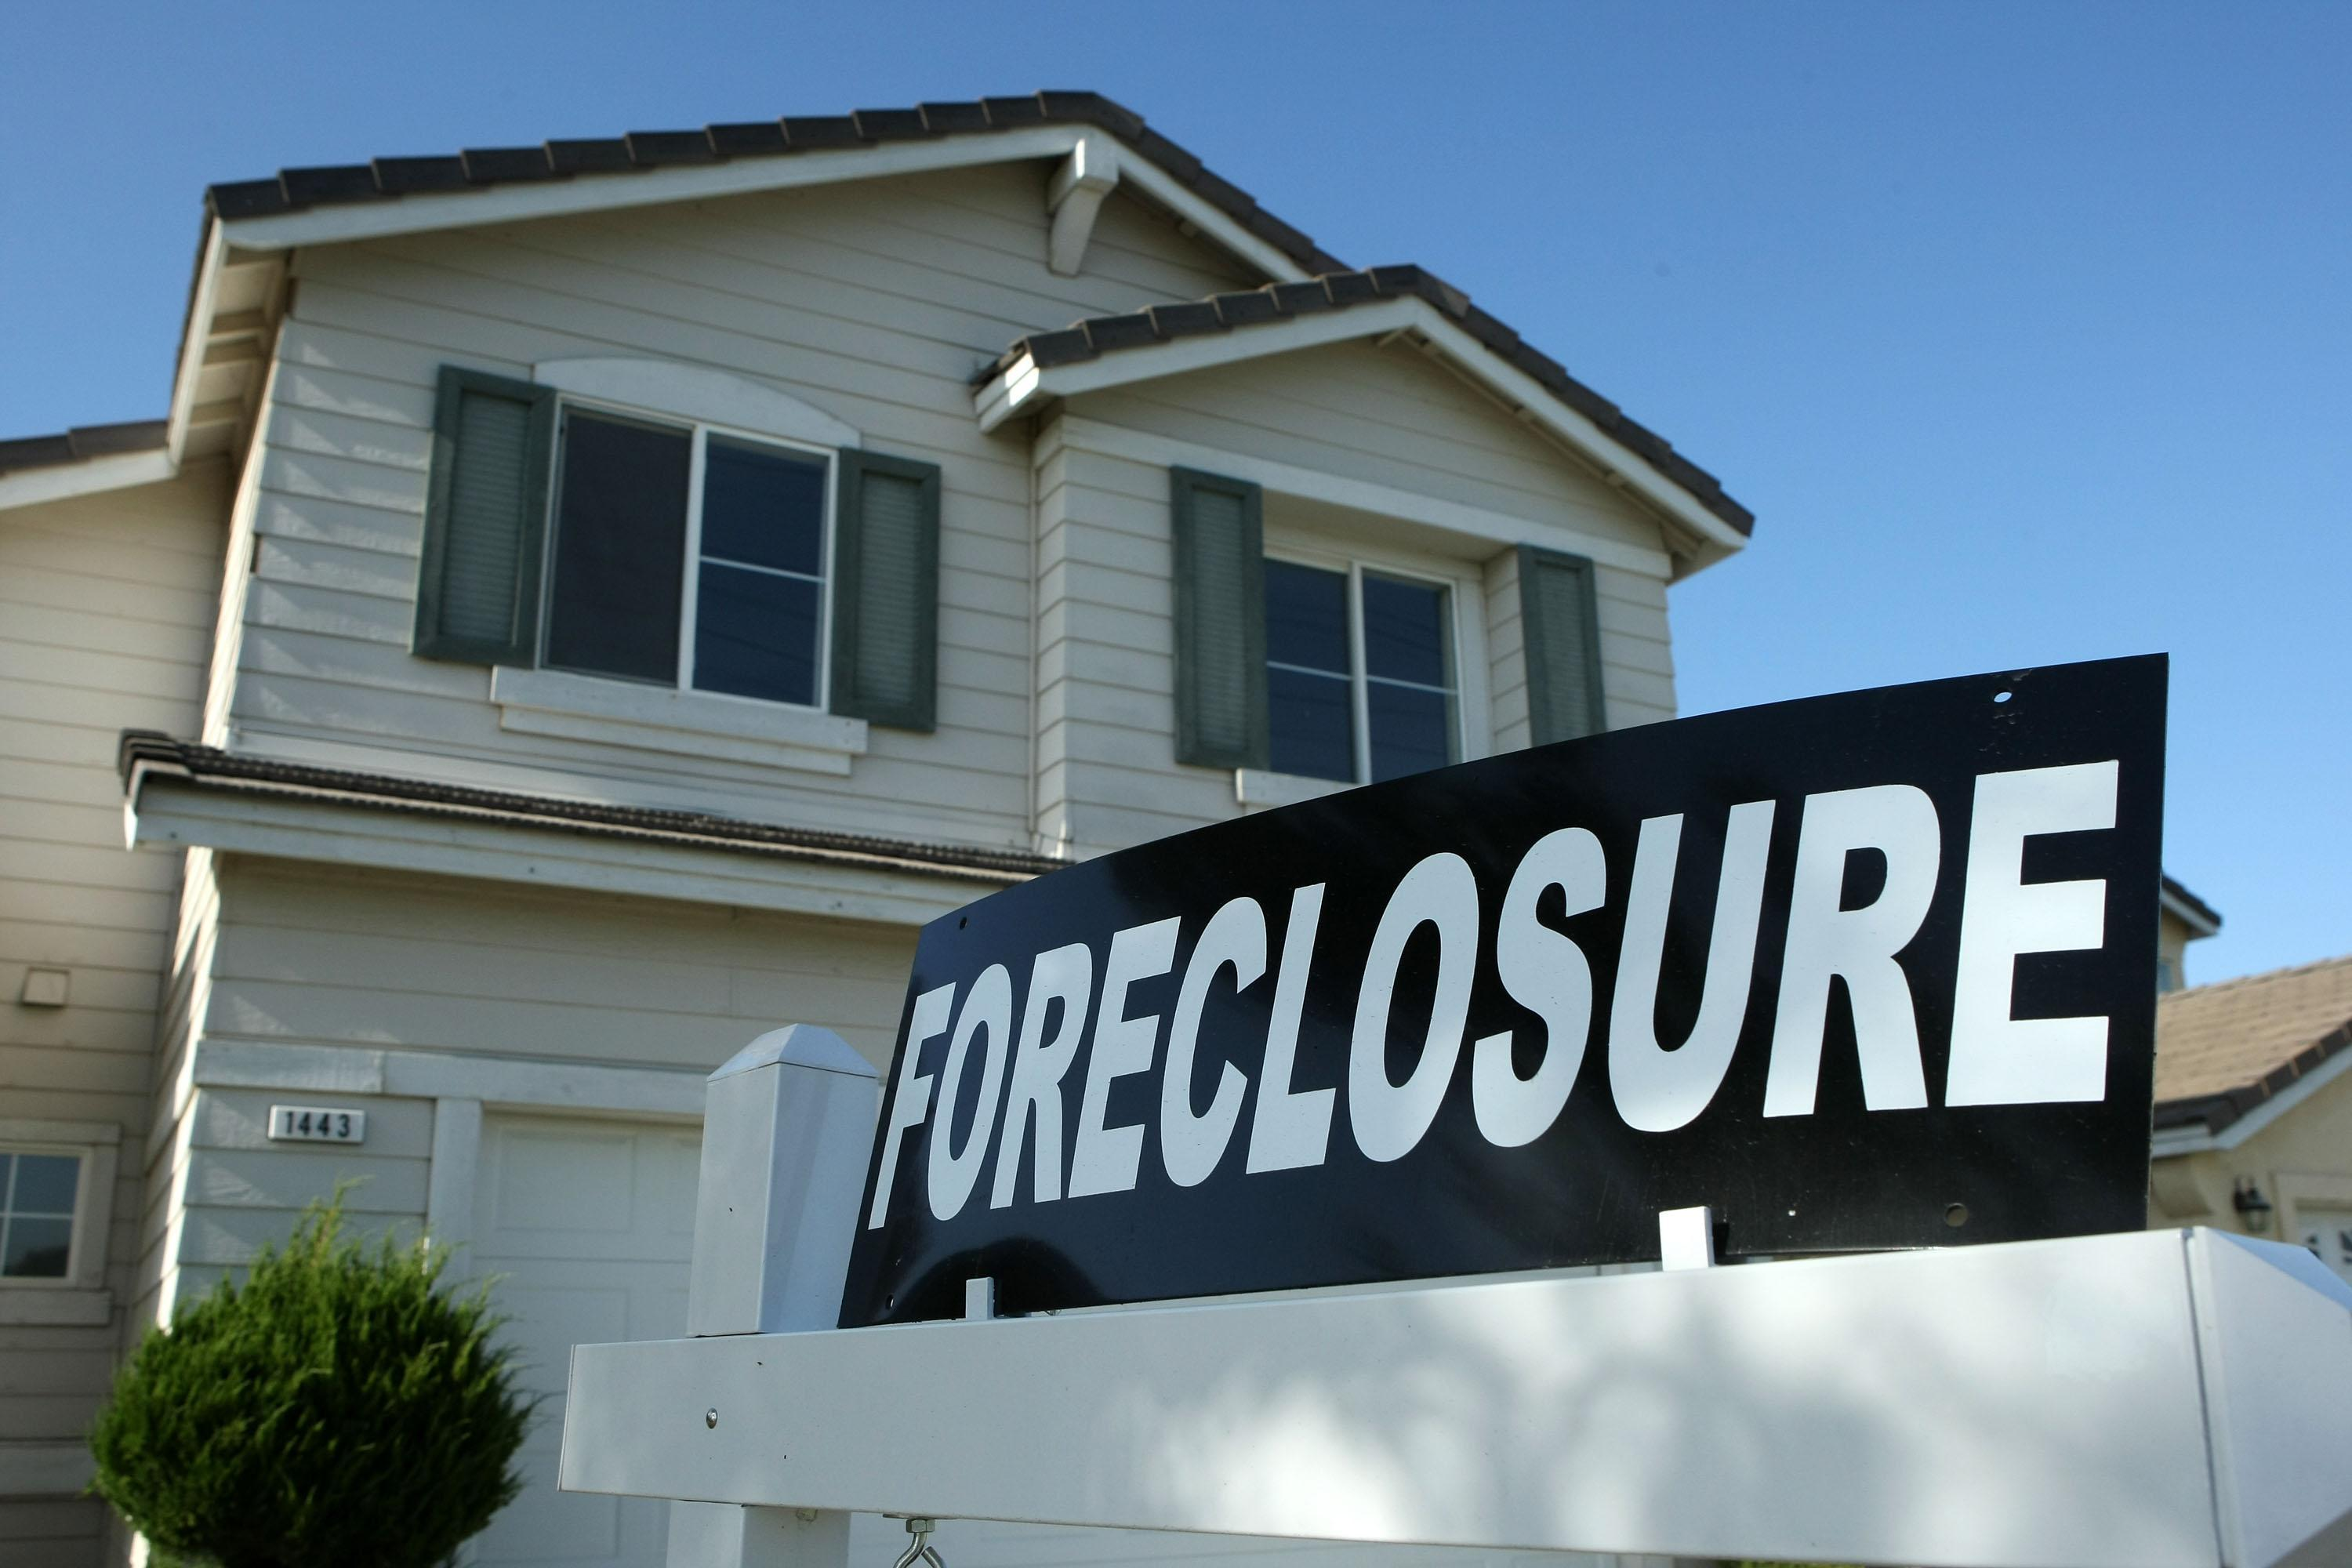 National Foreclosure Nightmare Coming To An End Mortgage